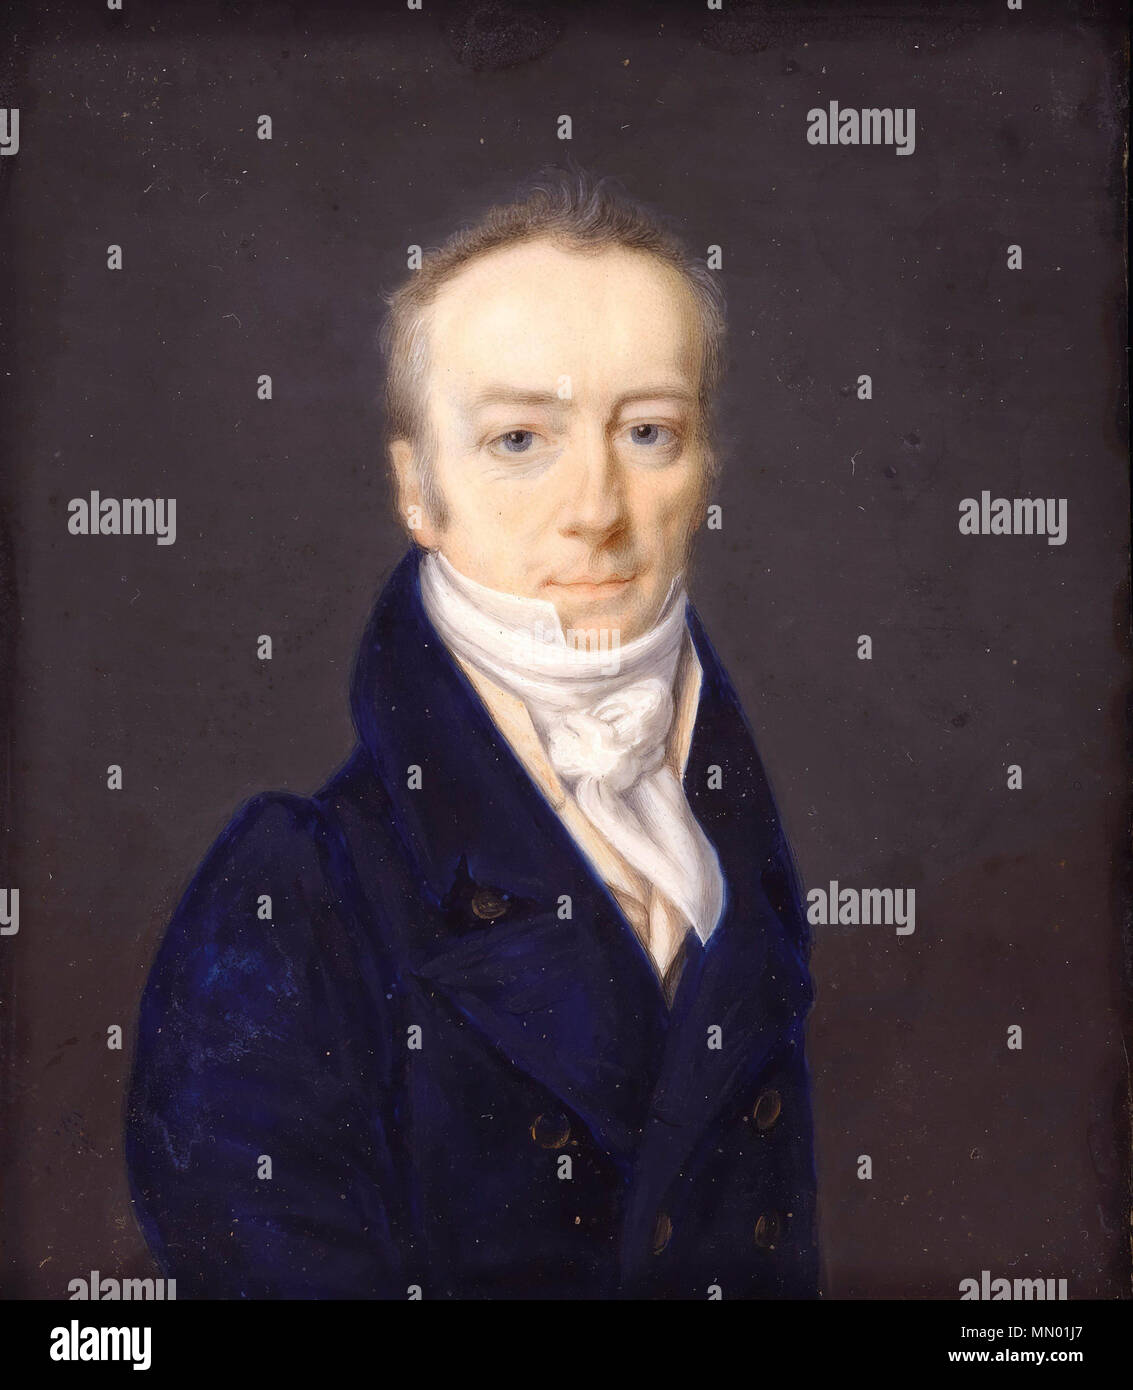 .  English: Portrait of James Smithson (ca. 1765-1829)  James Smithson. 1816. Henri-Joseph Johns - James Smithson (1816) - Google Art Project cropped - Stock Image